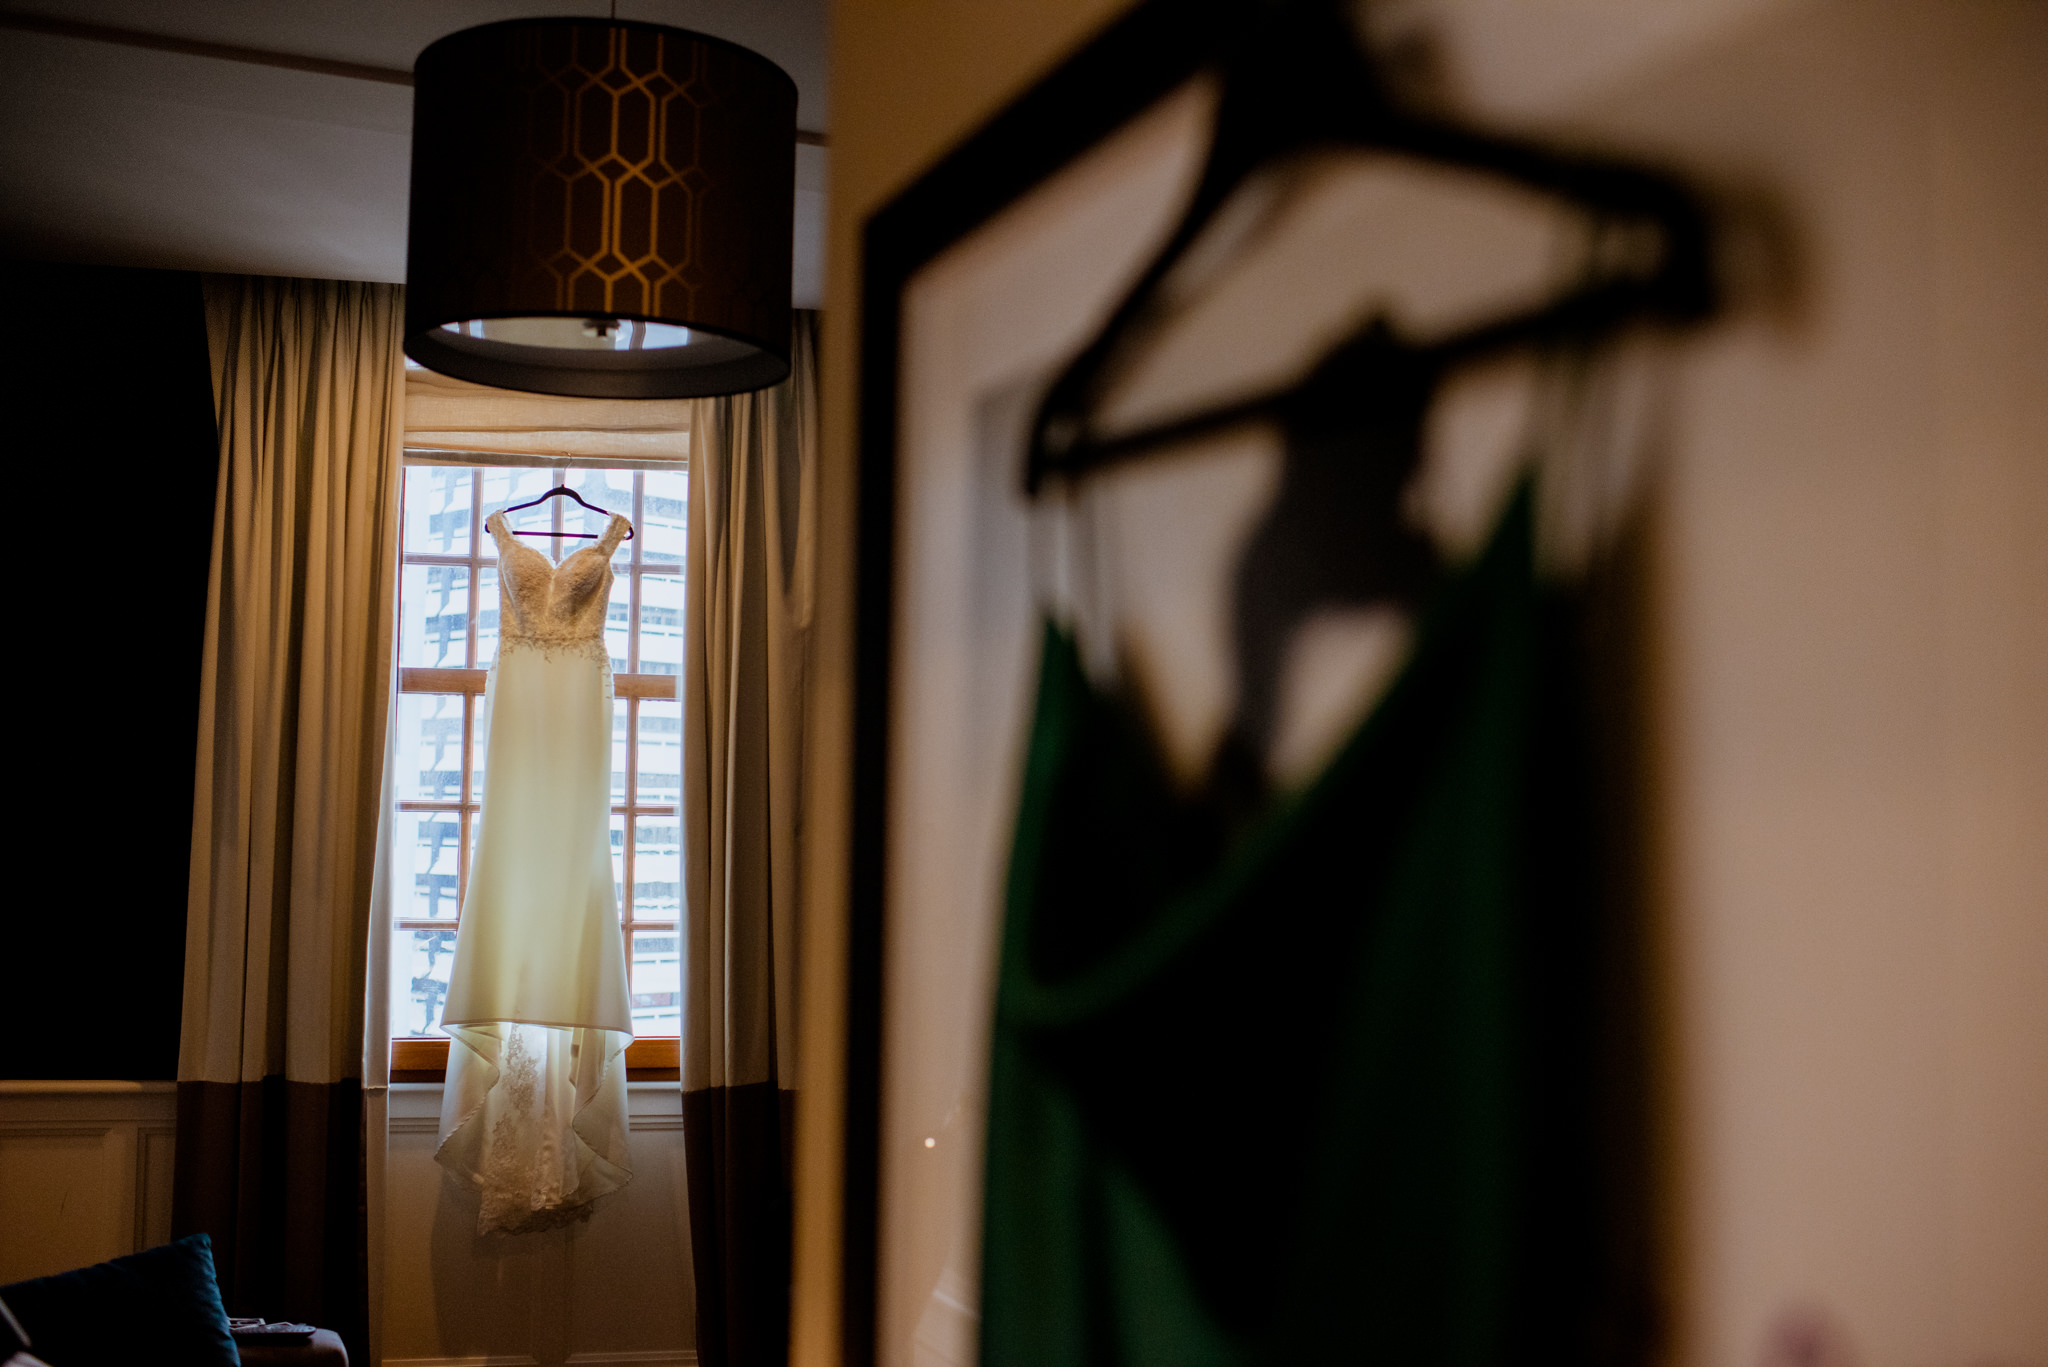 Wedding dress hung in window in background and green dress hung in foreground